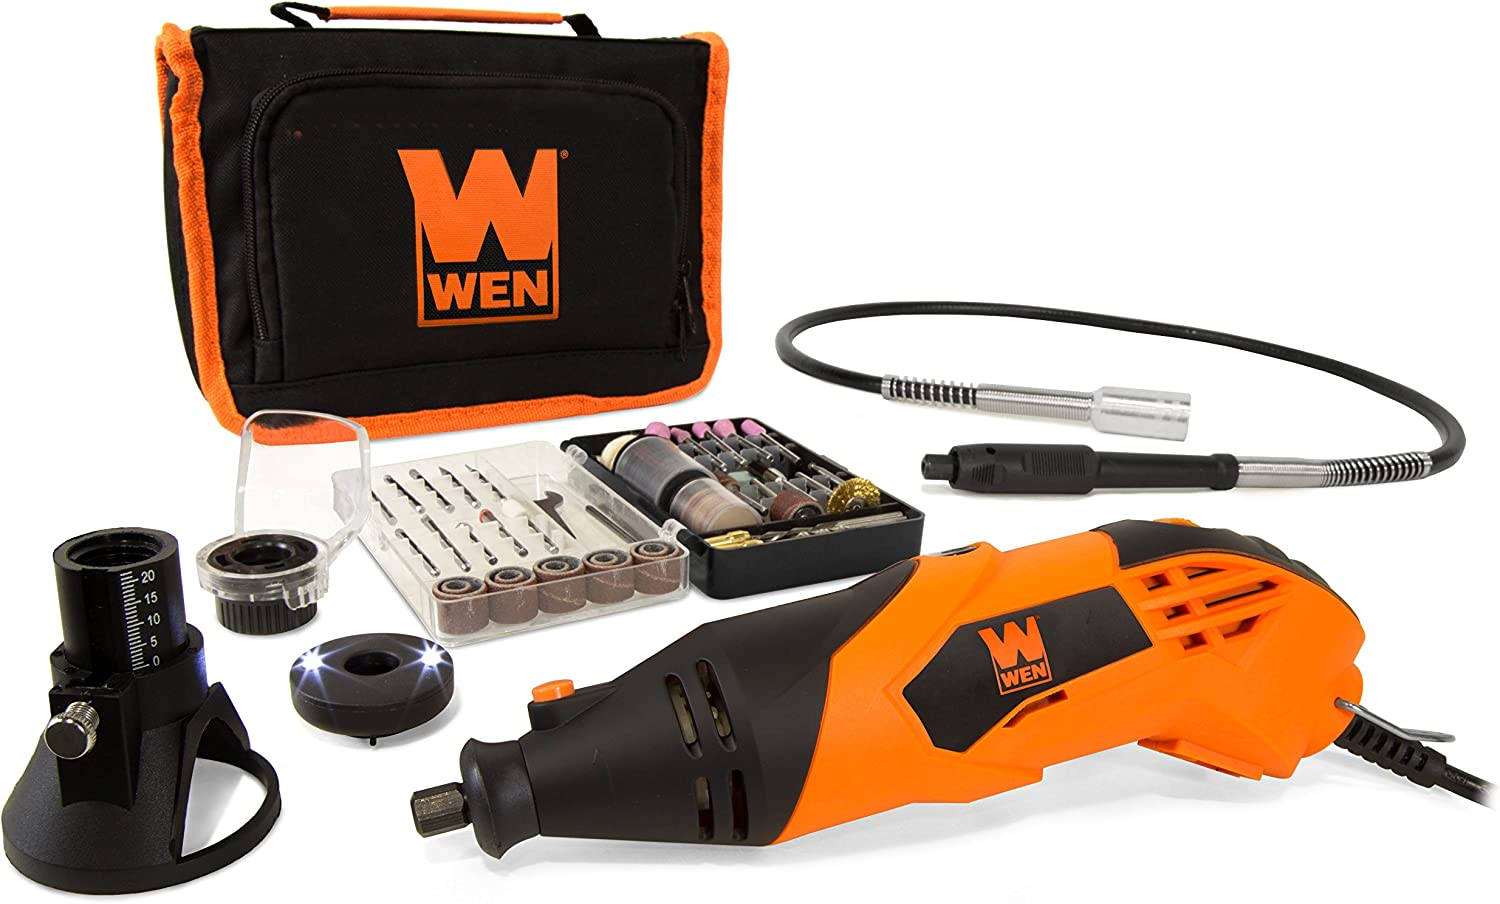 WEN 23114 1.4-Amp High-Powered Variable Speed Rotary Tool with Cutting Guide, LED Collar, 100 Accessories, Carrying Case and Flex Shaft